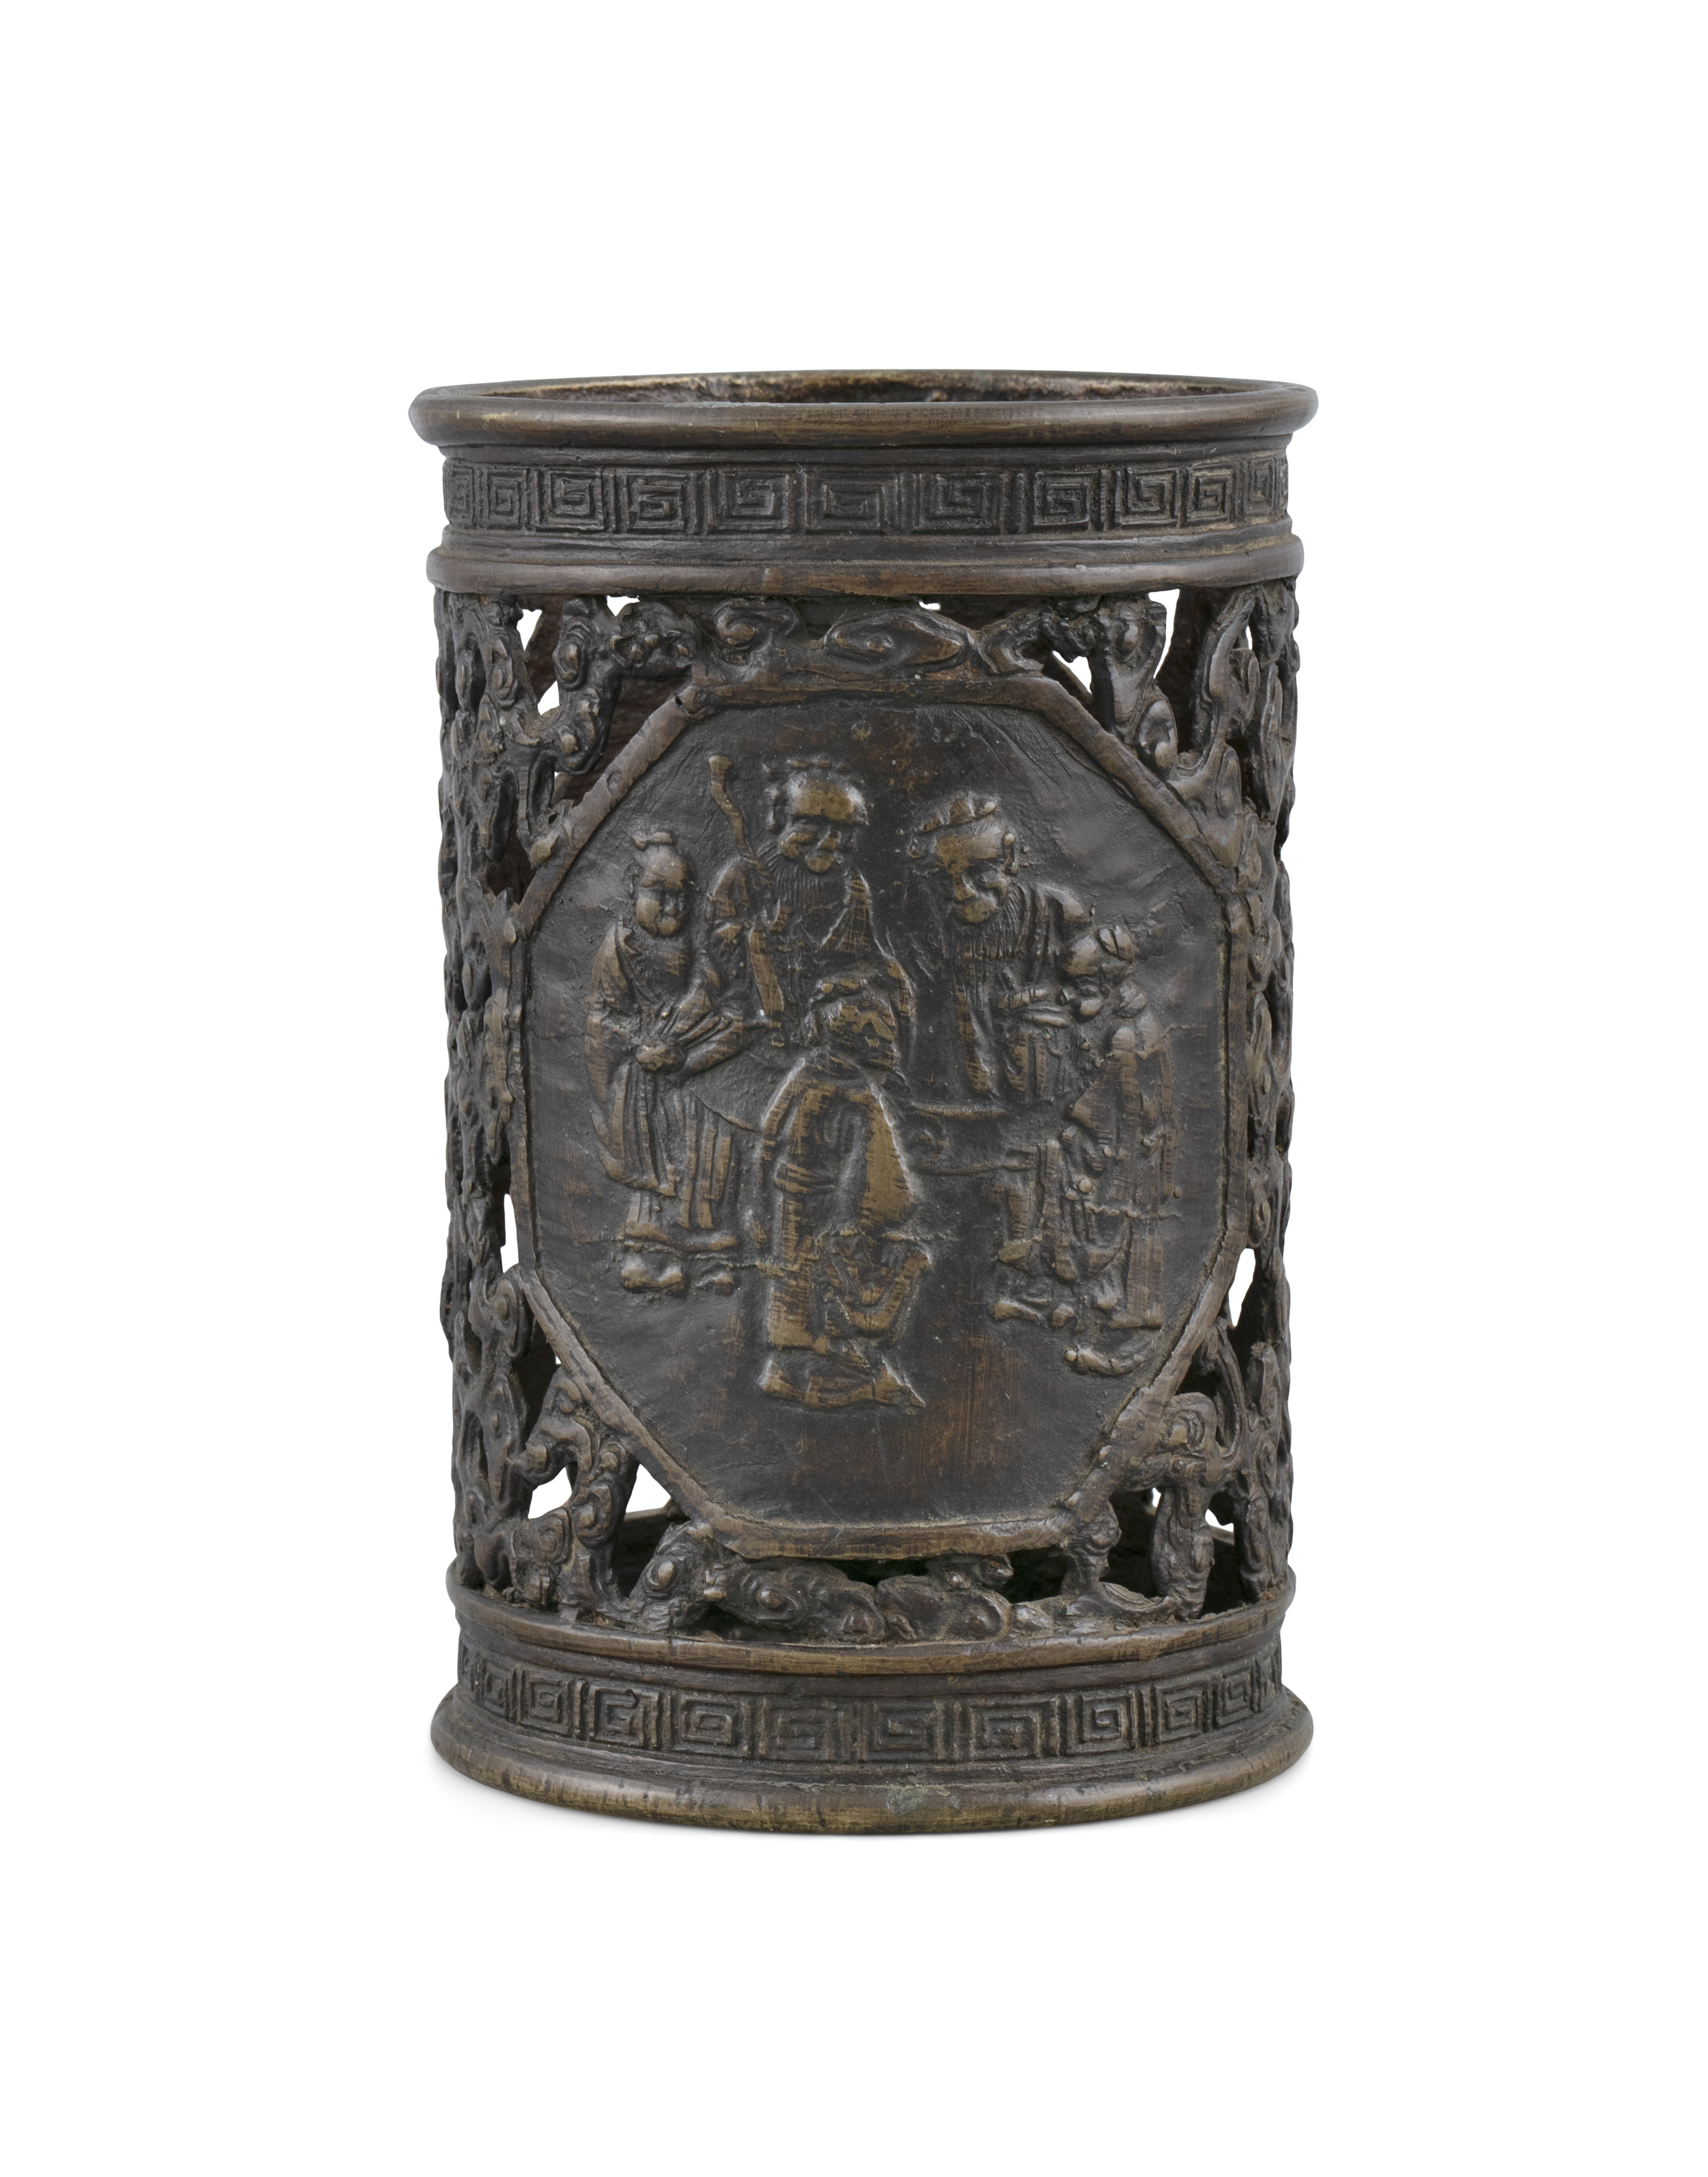 A PARCEL RETICULATED BROWN-PATINA BRONZE 'IMMORTALS' BRUSHPOT China, late Qing Dynasty H: 12,3